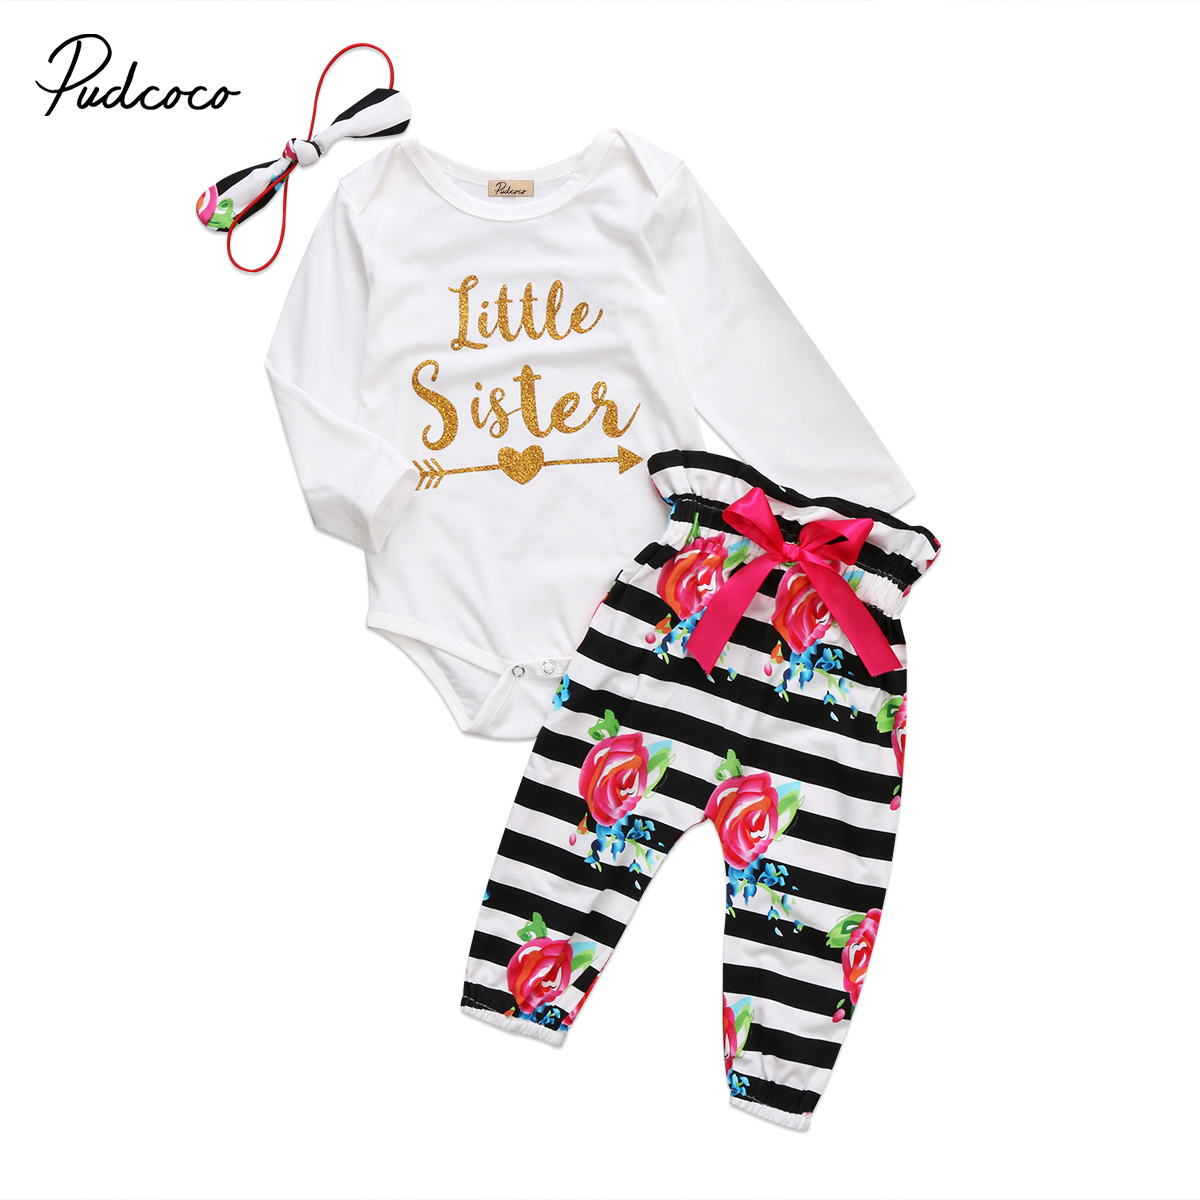 Little sister baby girl clothing 3pcs set newborn baby girl clothes letter romper bodysuit striped floral pants autumn clothes